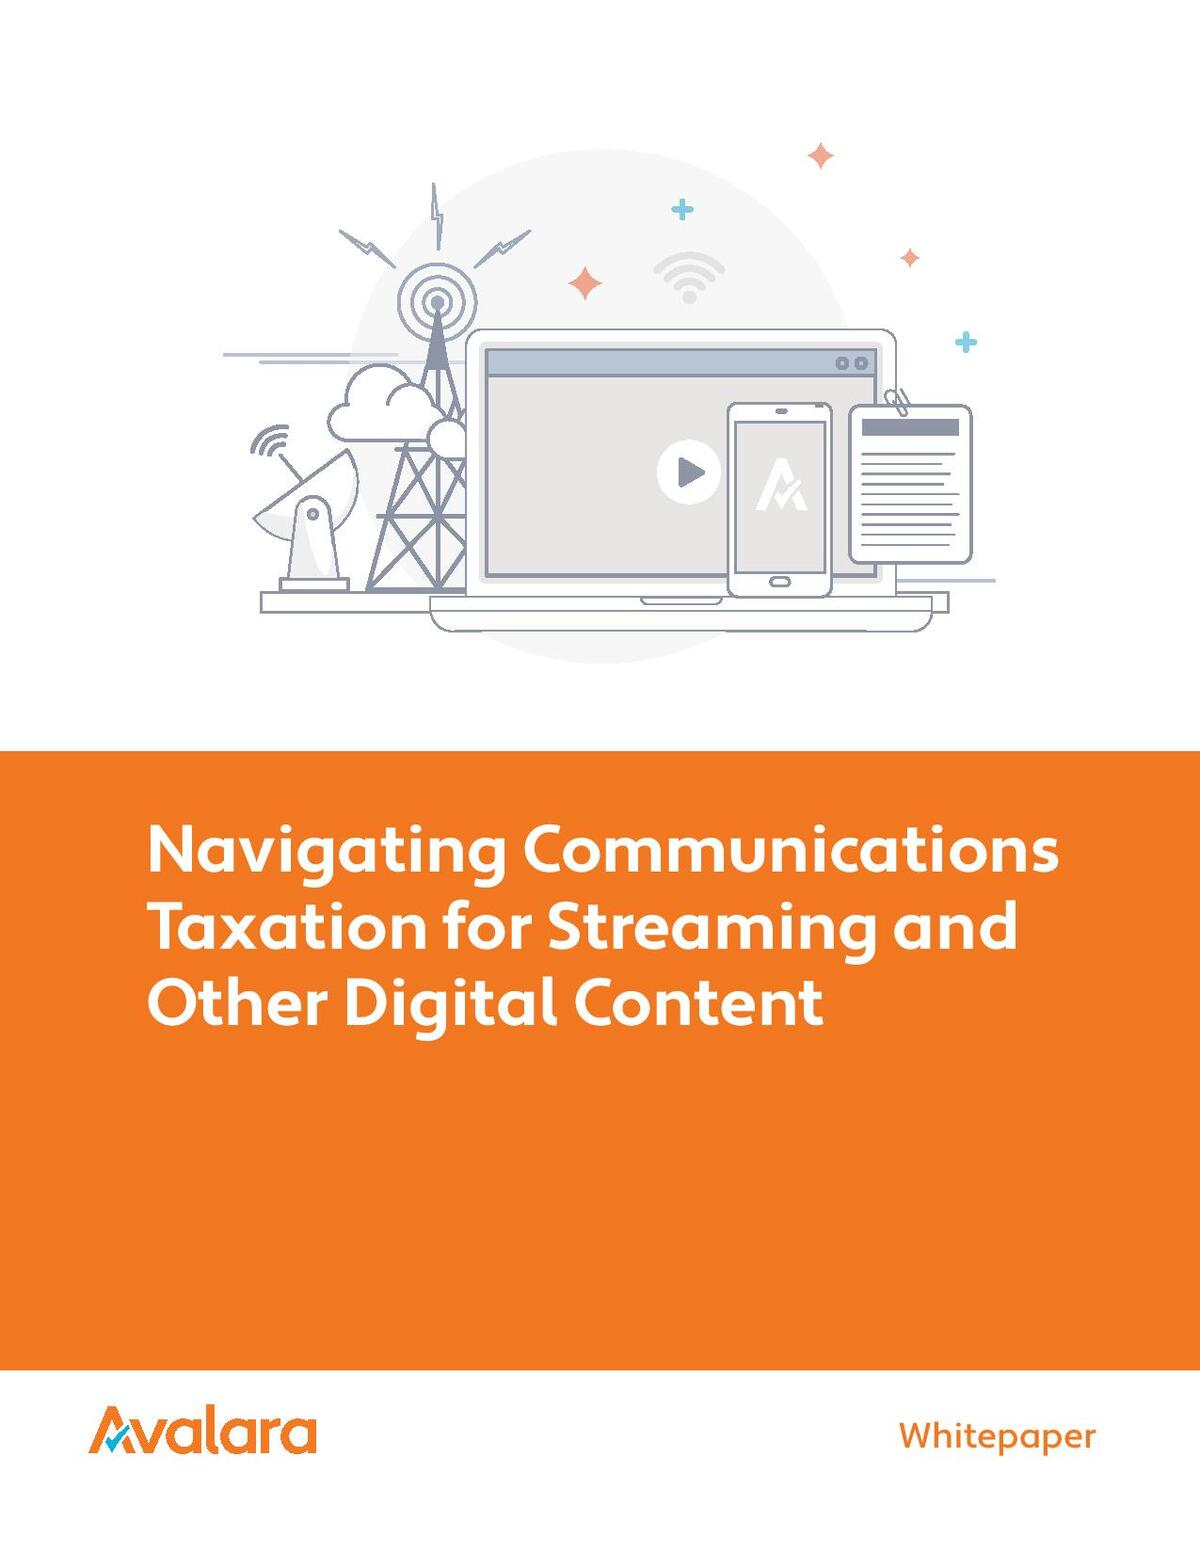 Whitepaper on Communications Taxation for Streaming